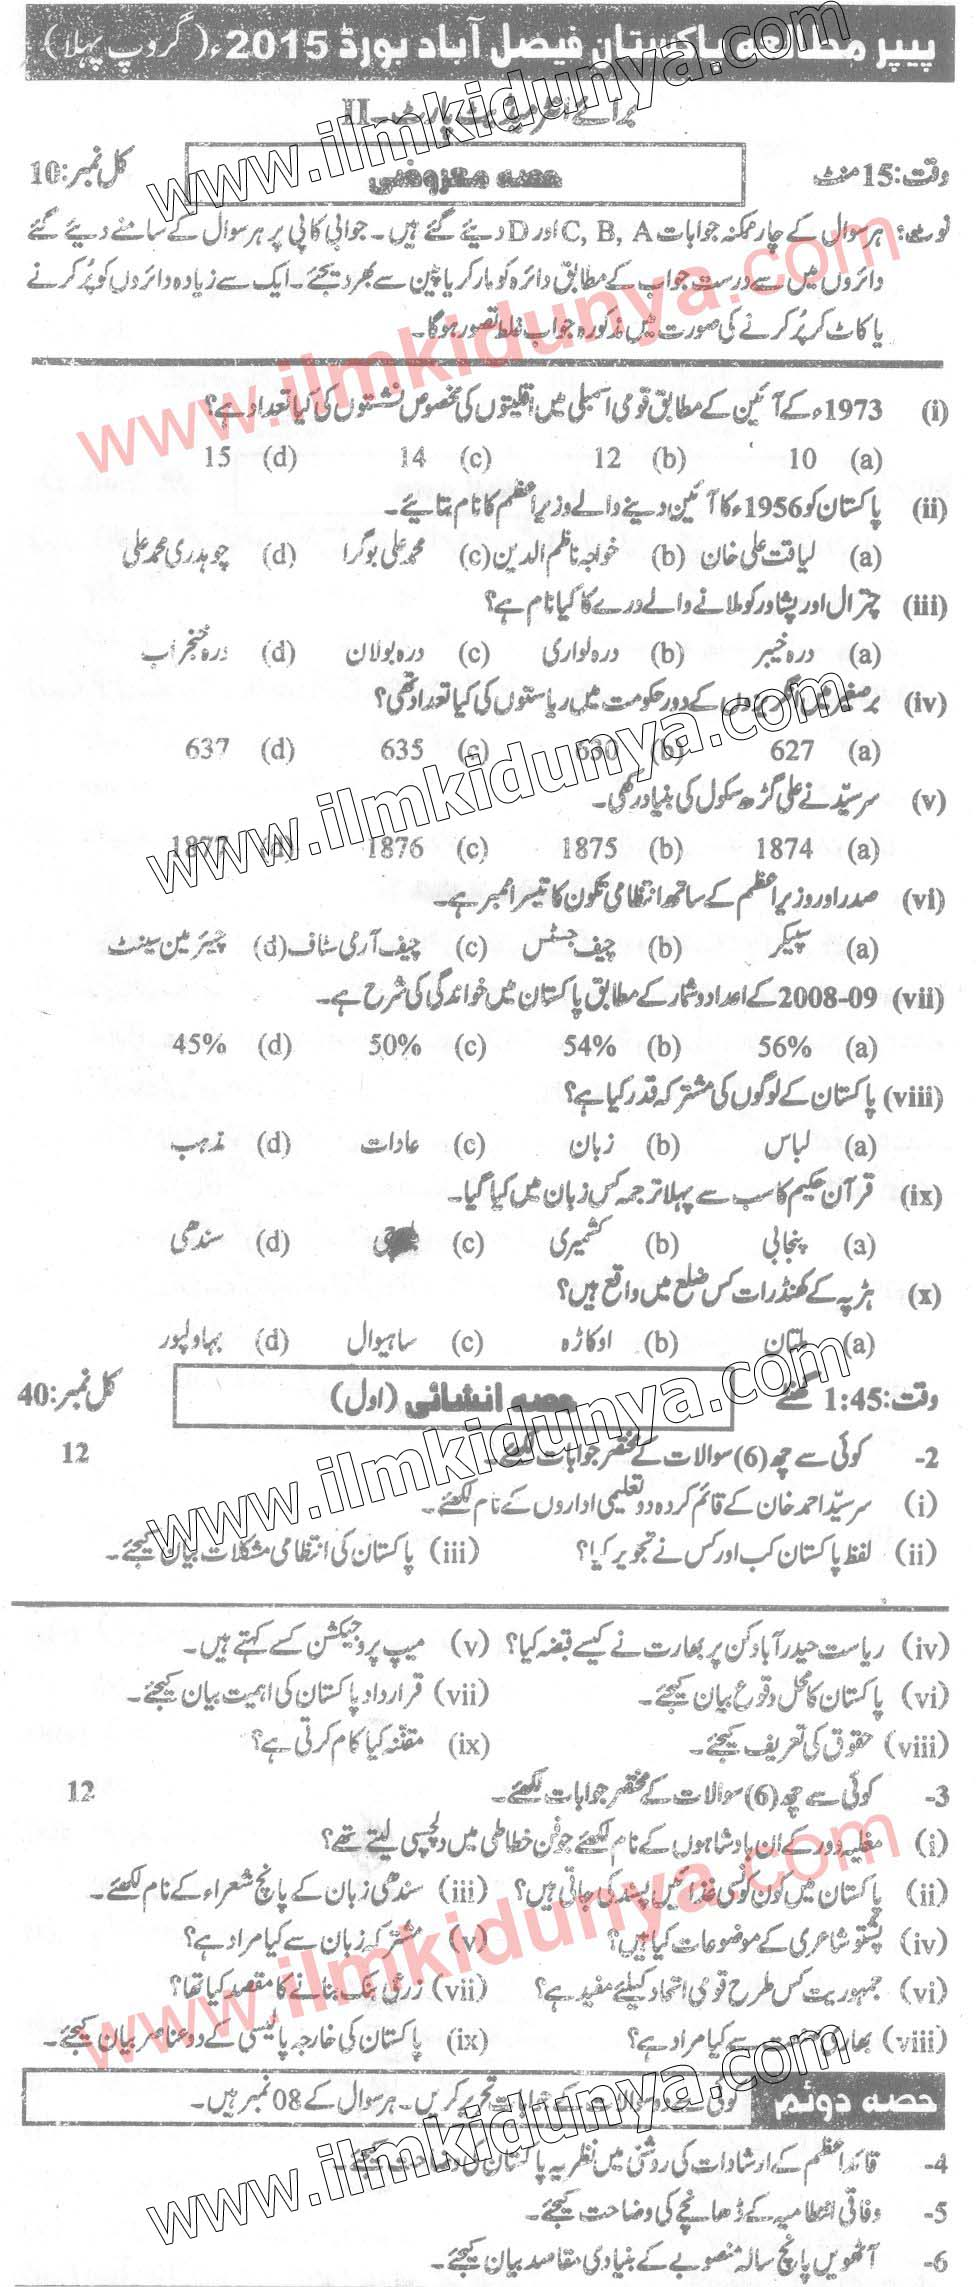 past papers of intermediate part 2 Past papers of english intermediate part 2 sargodha board uptodate is available here so that you can easily download inter part 2 english past papers which will help you in getting good.